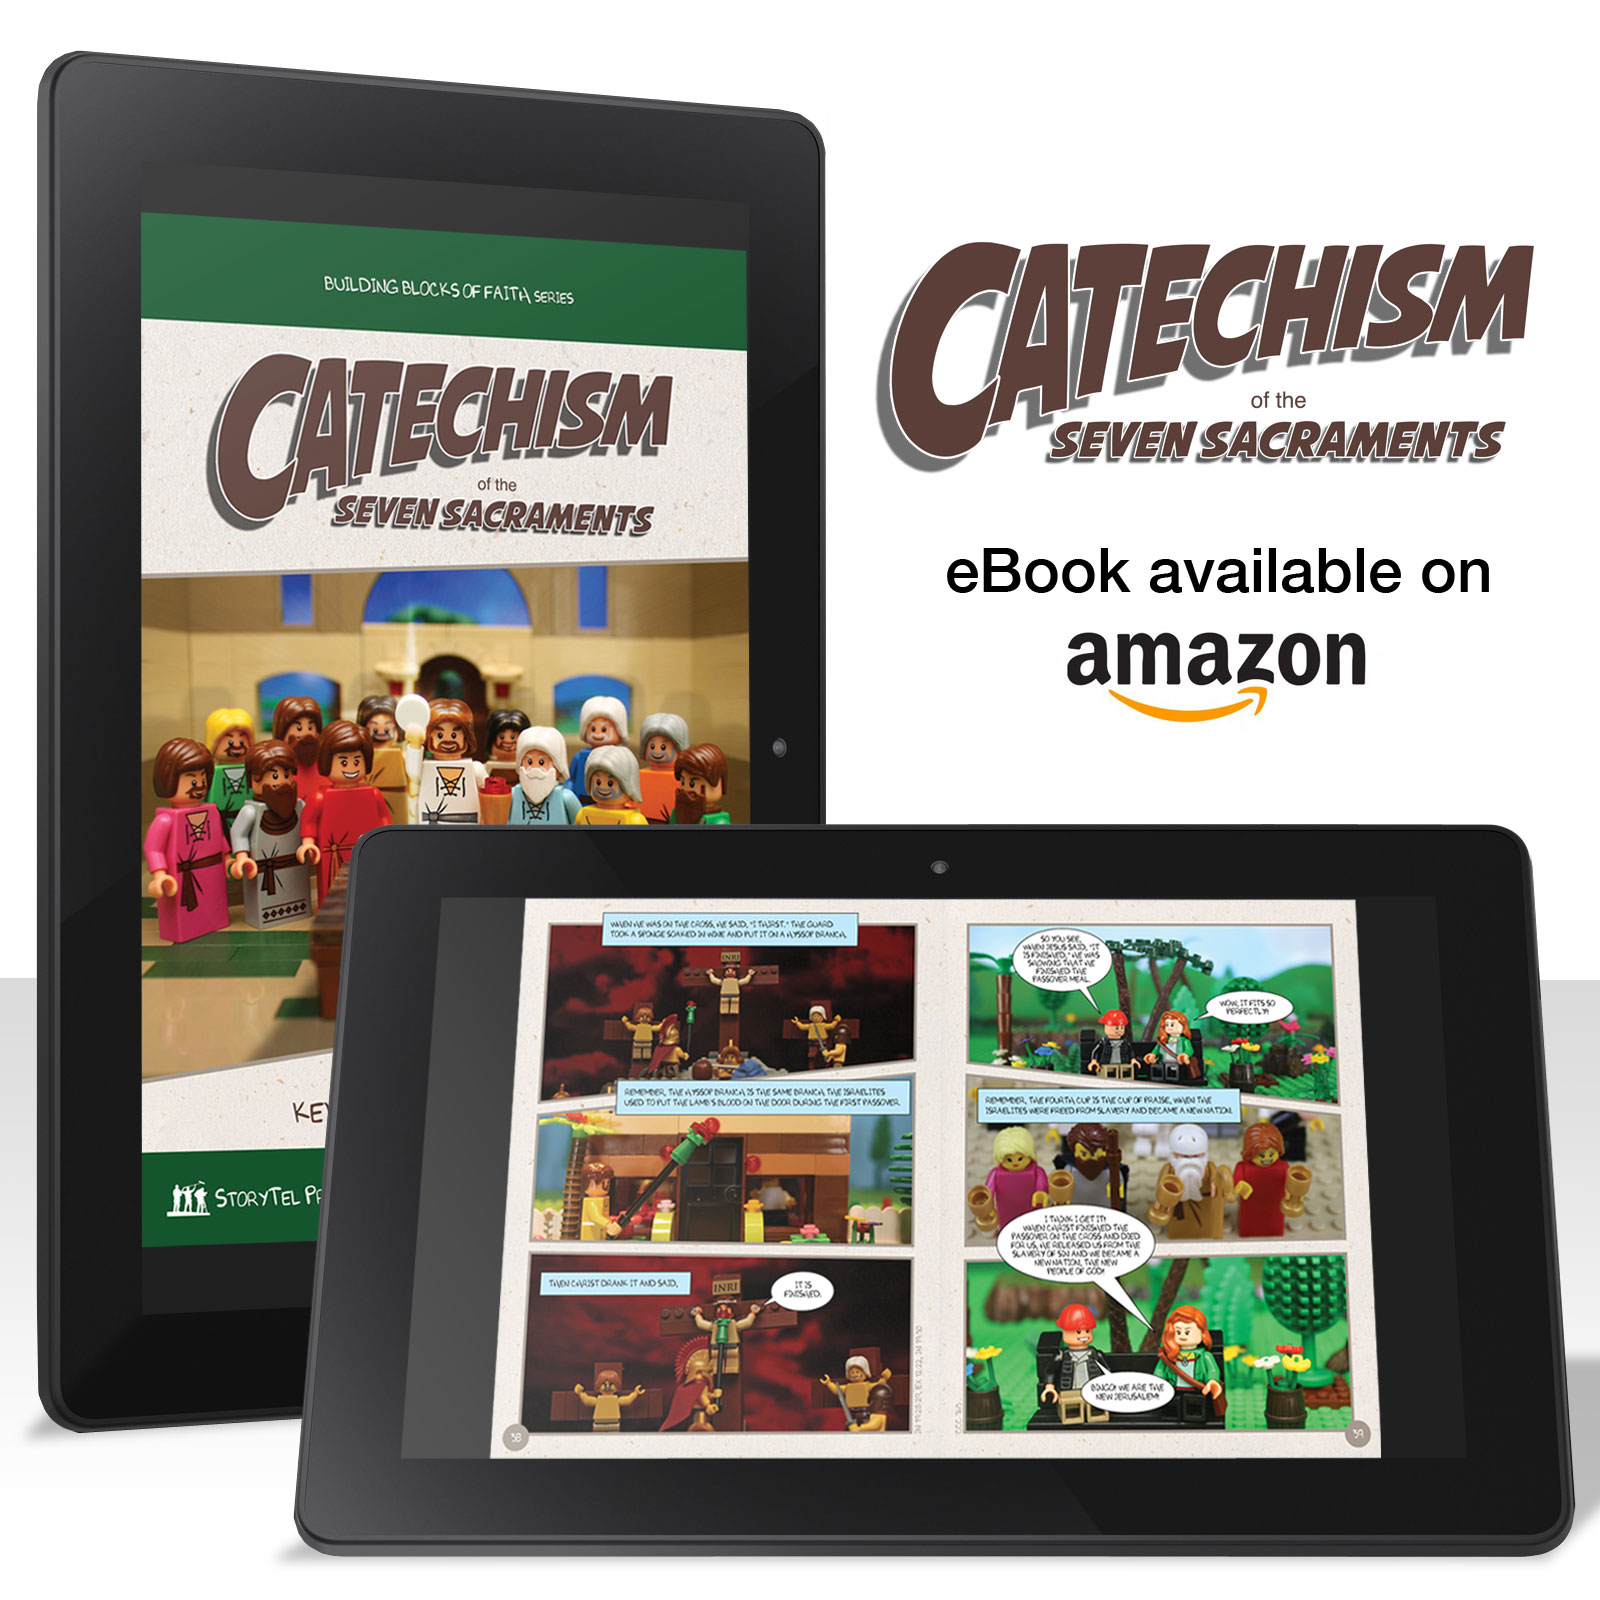 Ebook-on-kindle-two-of-them-ongoing.jpg